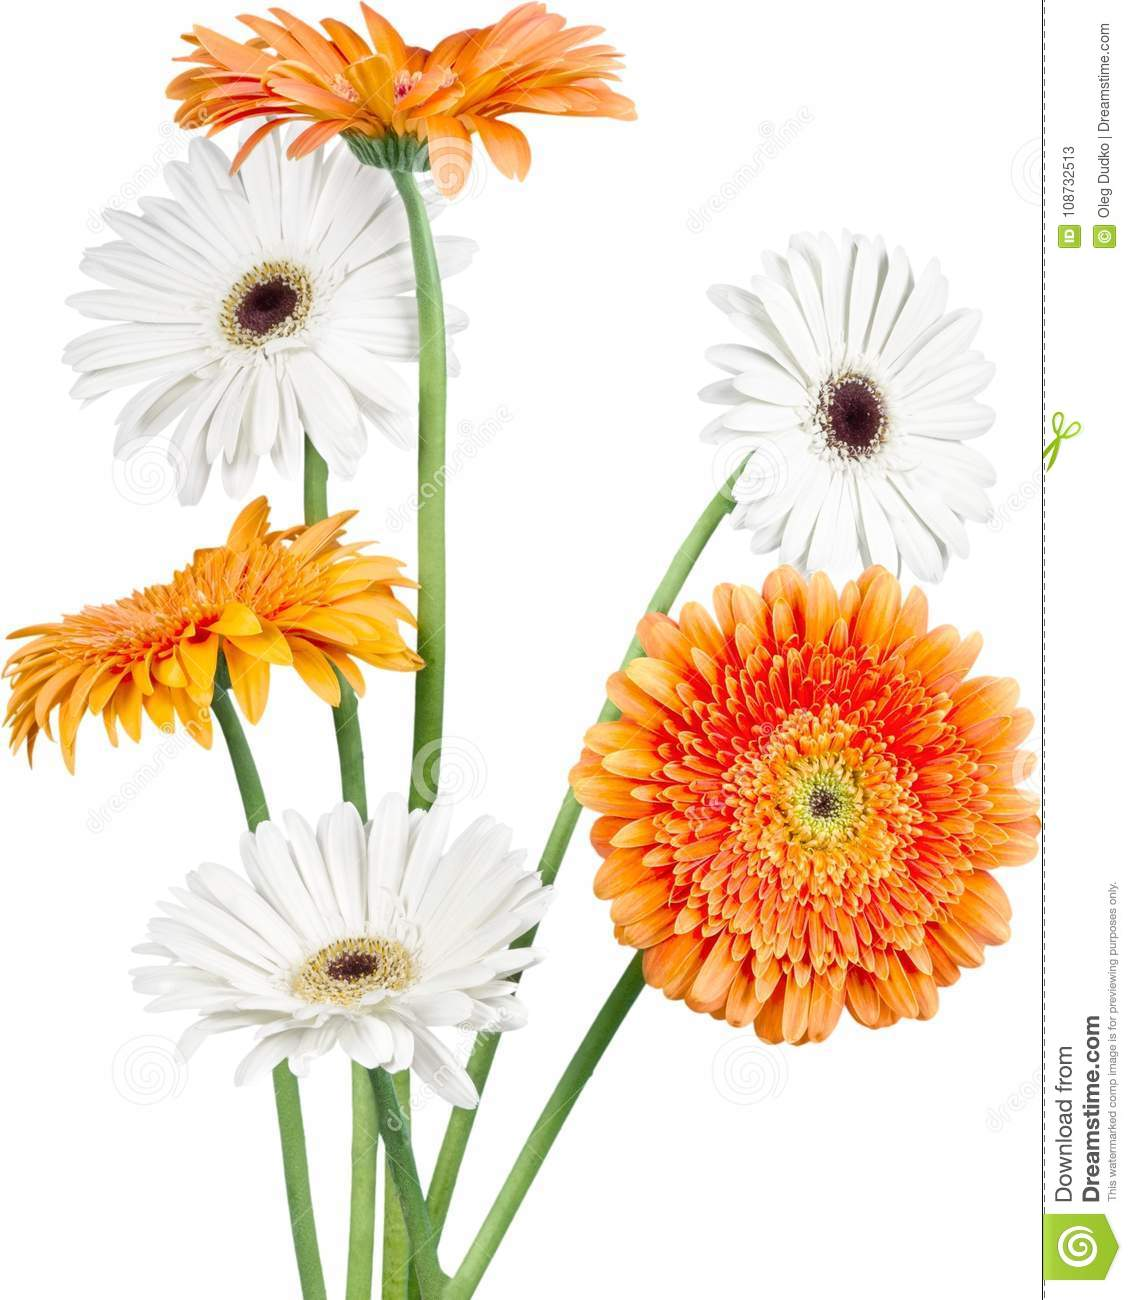 Orange And White Gerbera Daisies Stock Image Image Of Florist